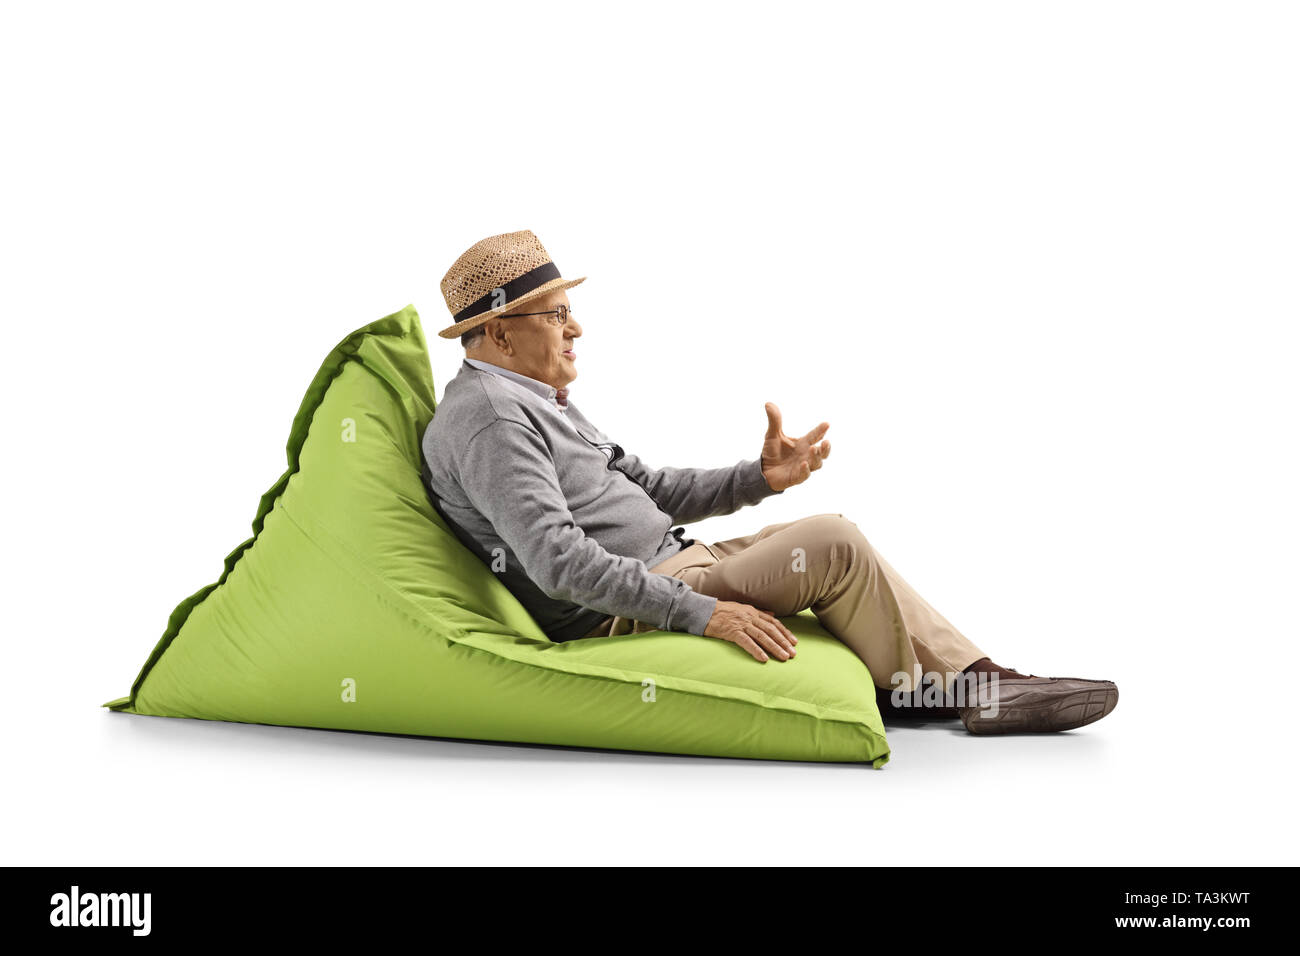 Full length shot of a senior man sitting on a bean-bag and gesturing with hand isolated on white background - Stock Image